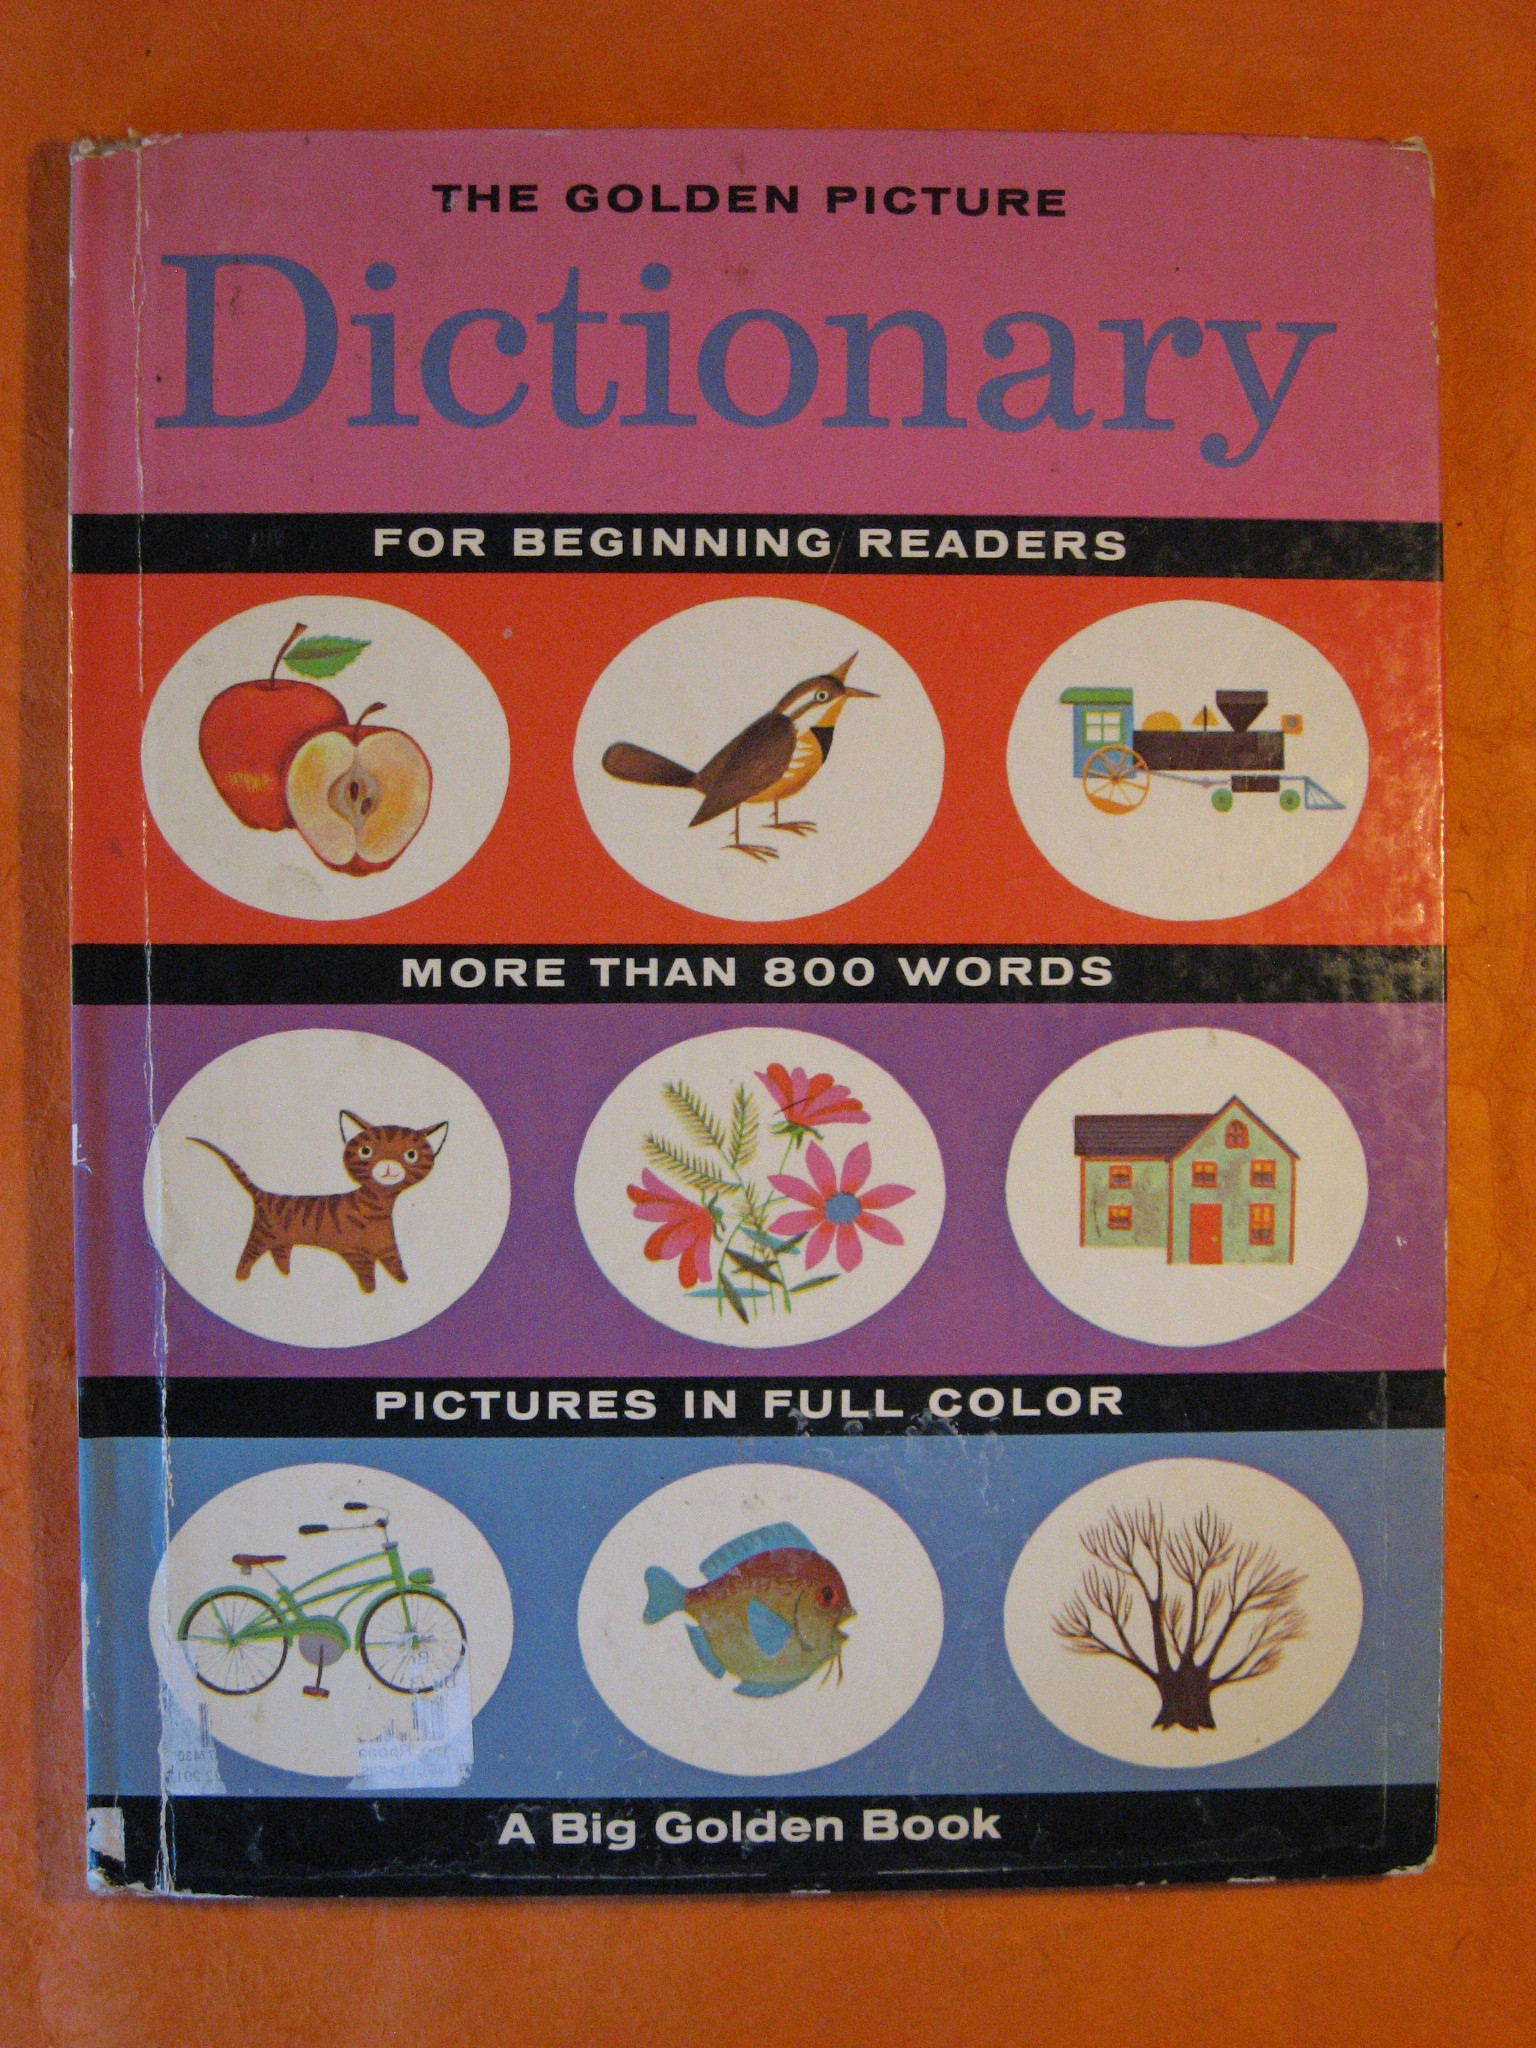 The Golden Picture Dictionary for Beginning Readers